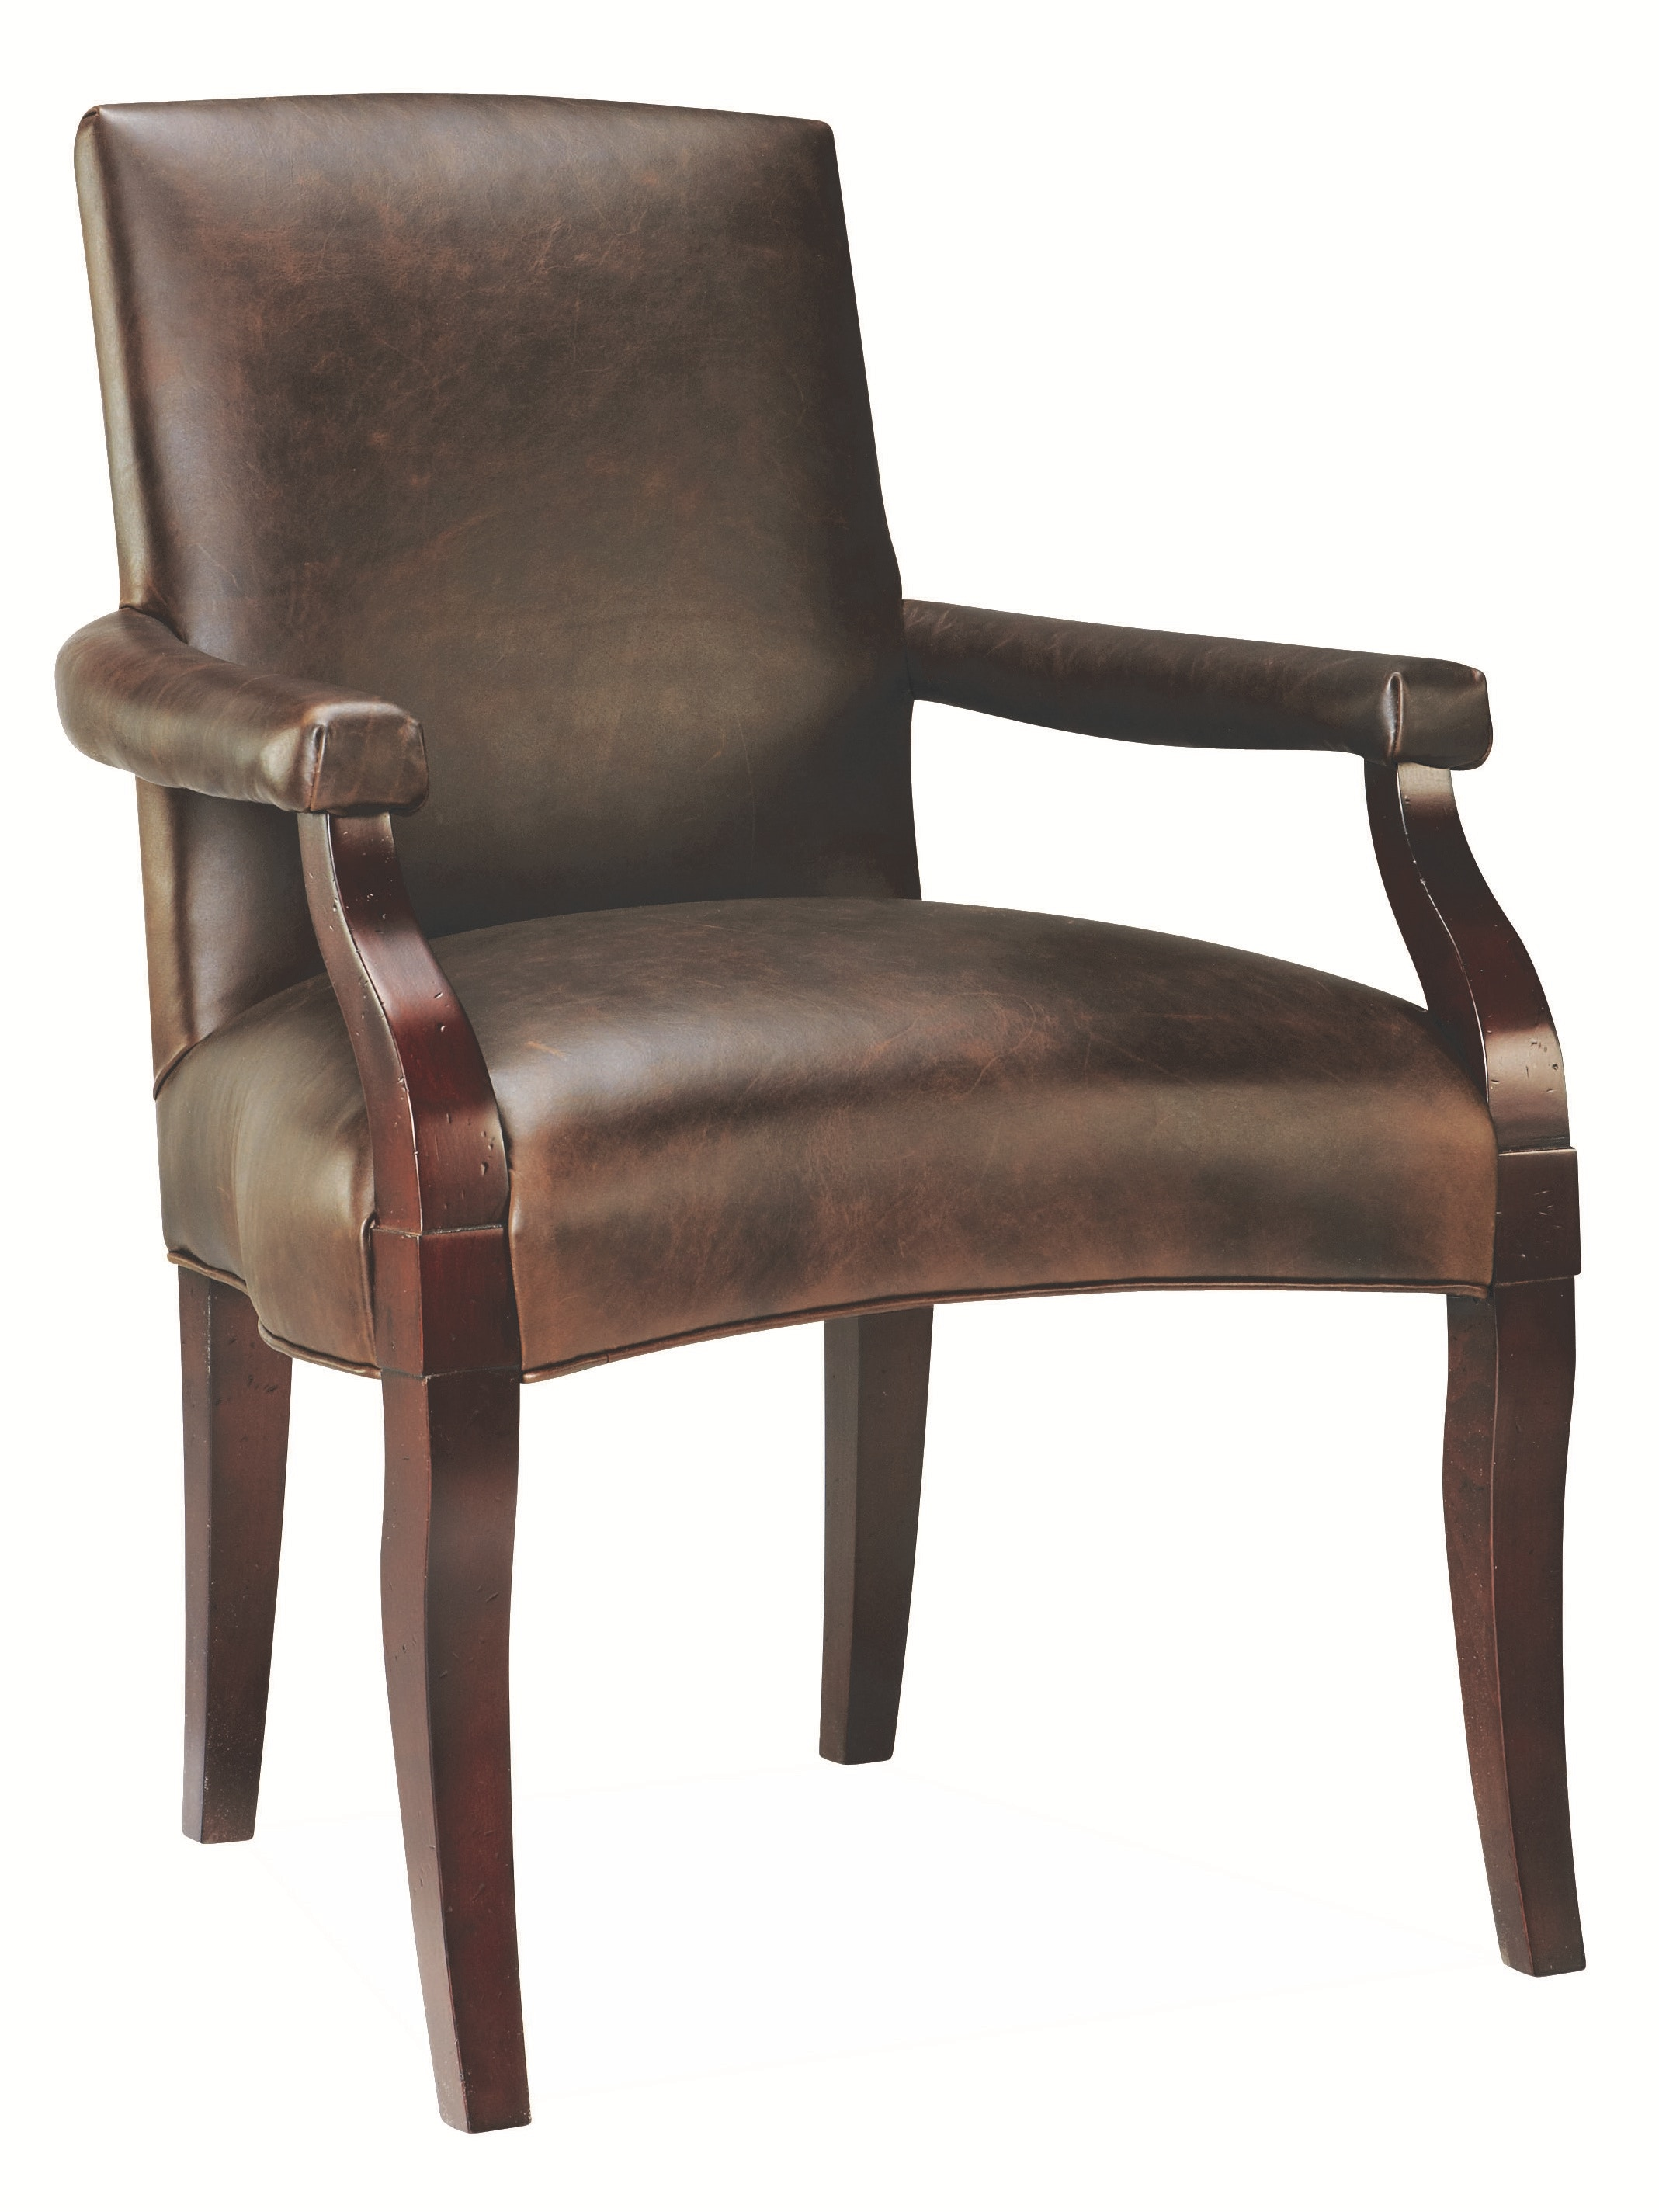 Lee Industries Dining Room Leather Chair